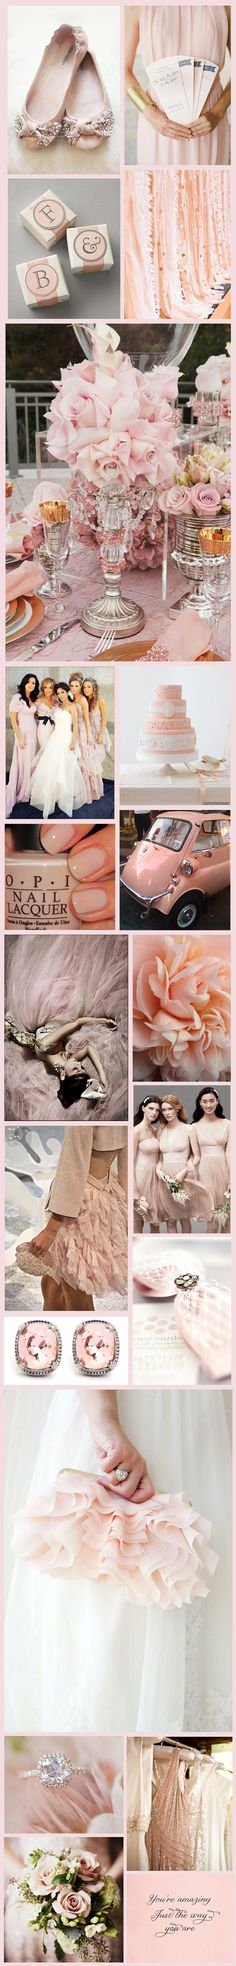 Blush Inspiration Board